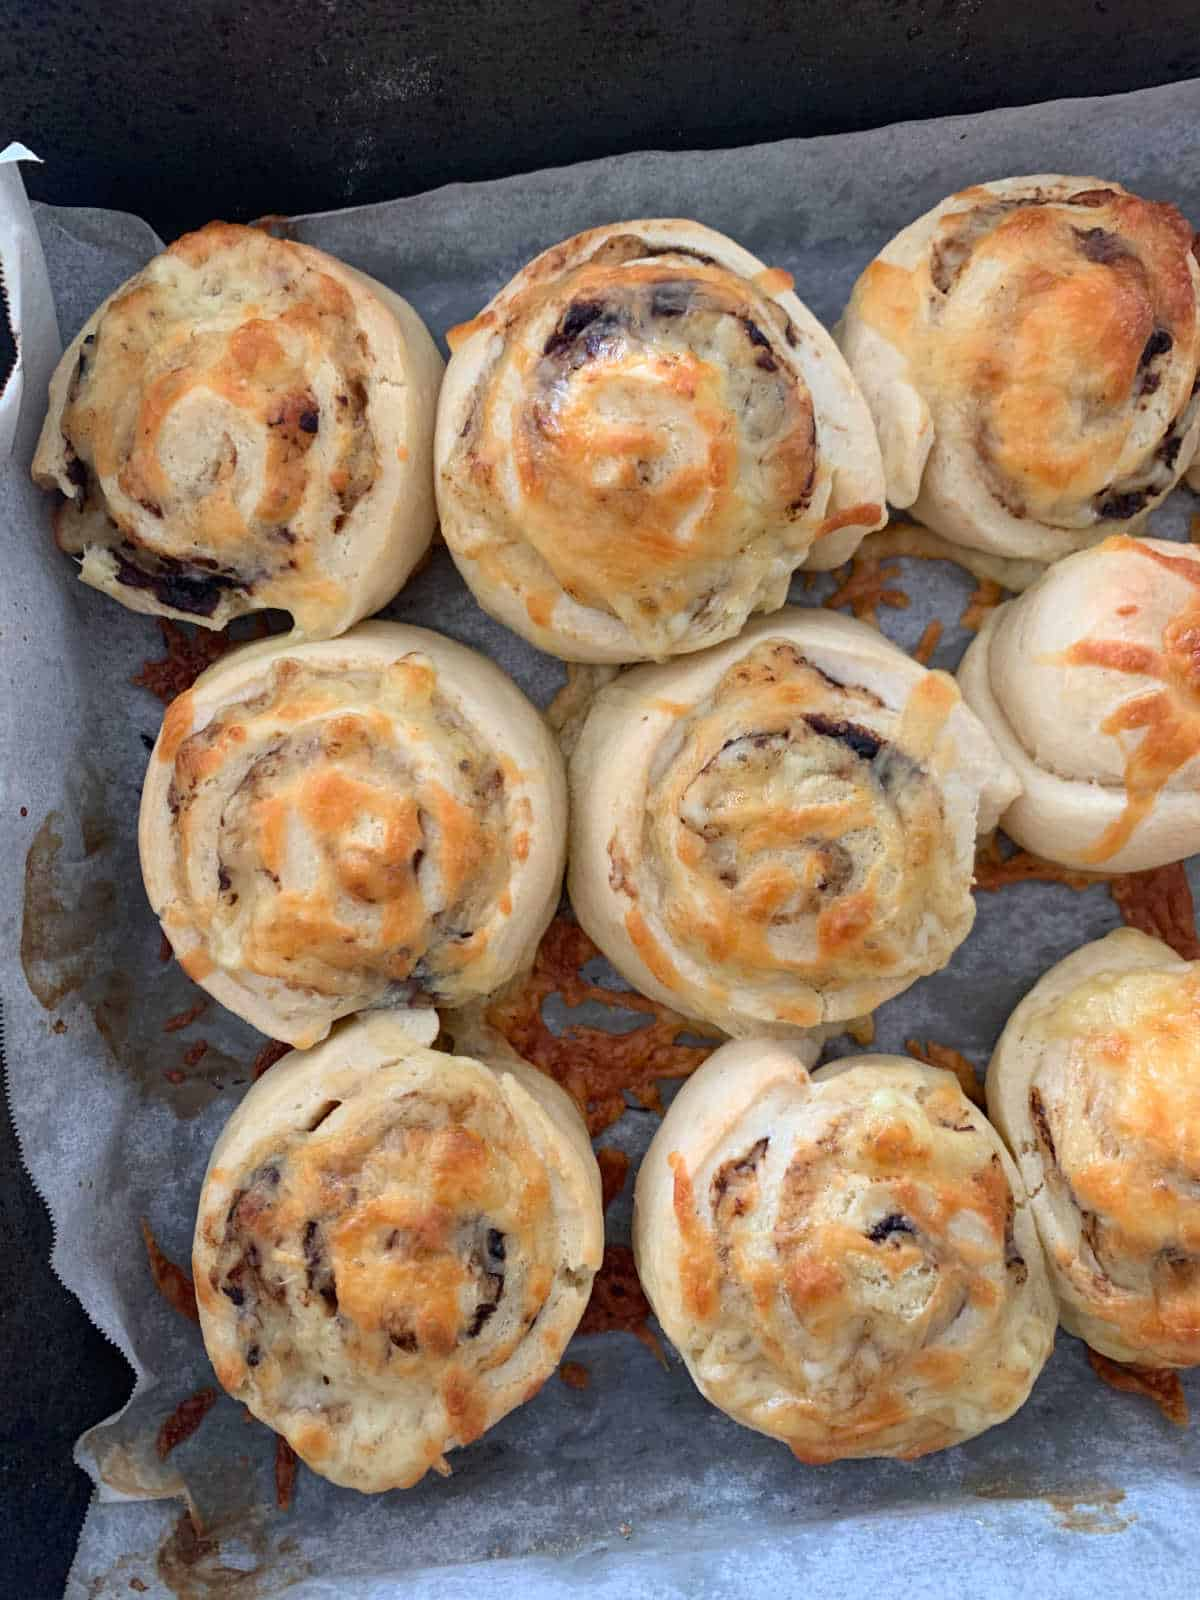 vegemite and cheese scrolls on tray